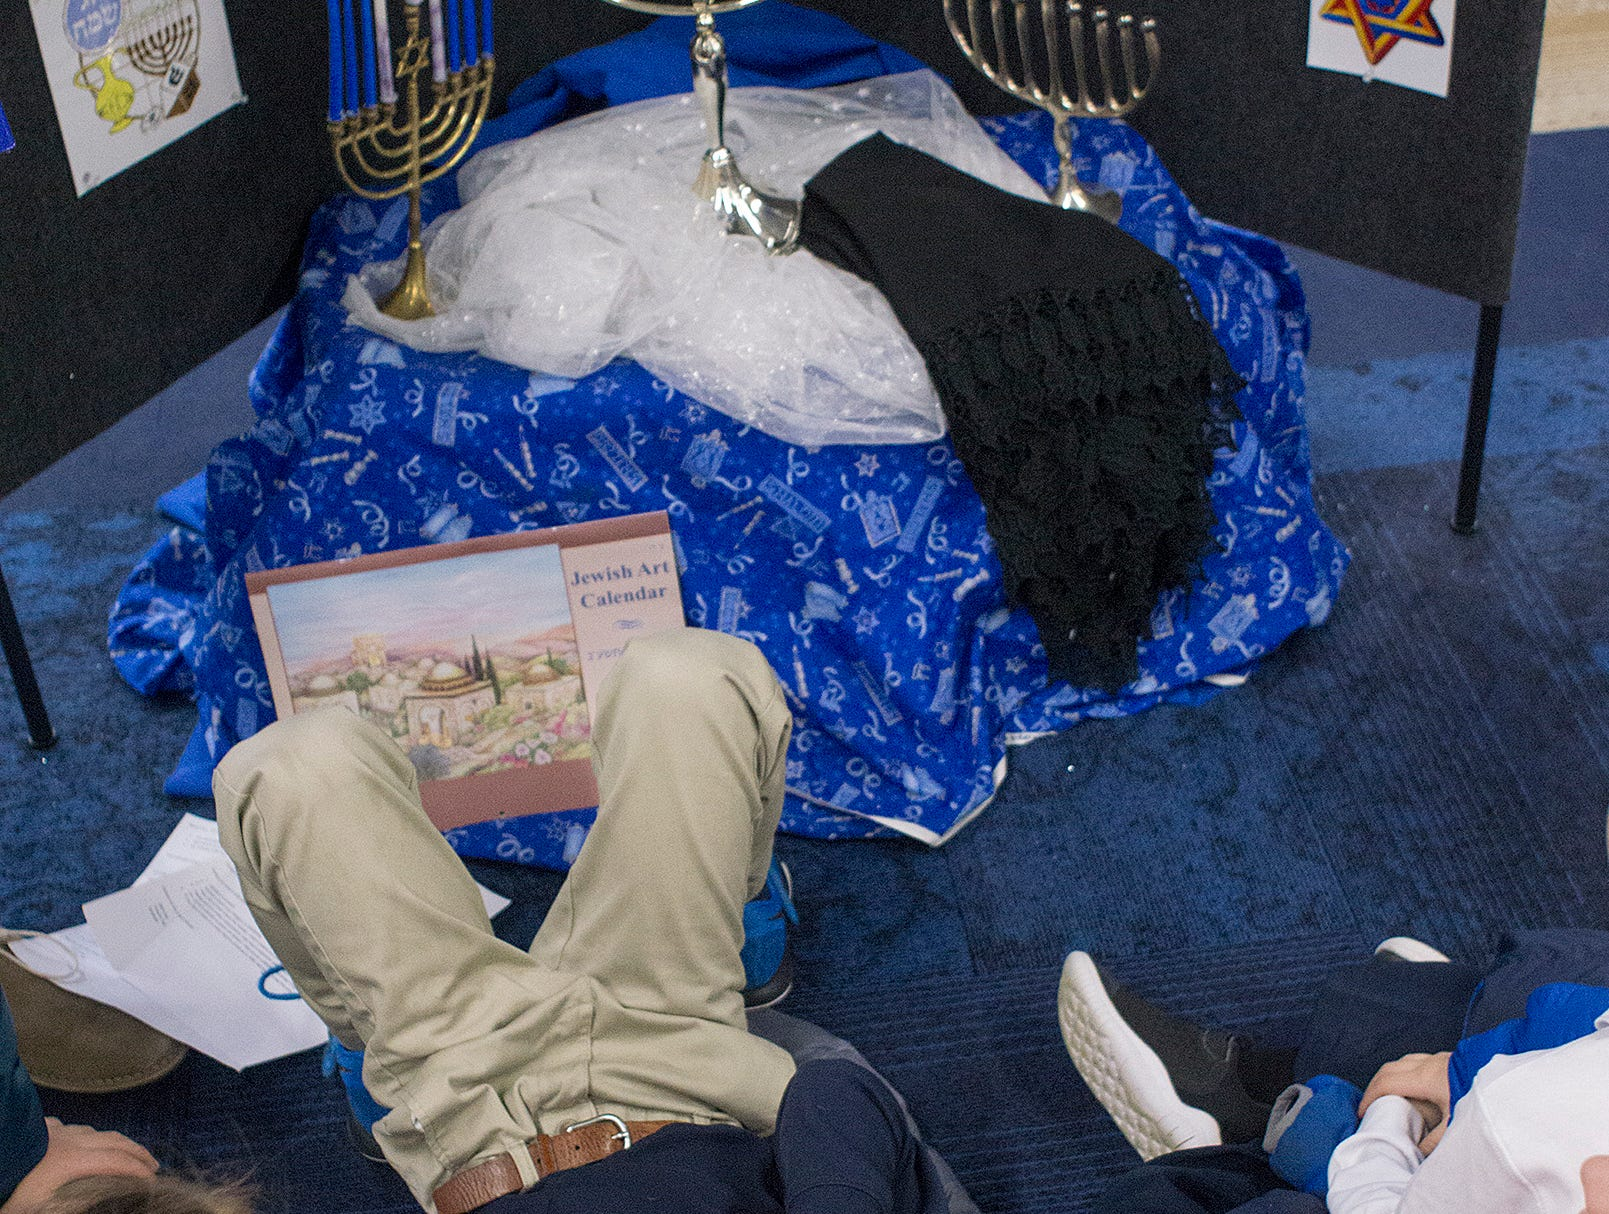 Brady MacMartin makes himself comfortable while learning about Hanukkah, the Festival of Lights.